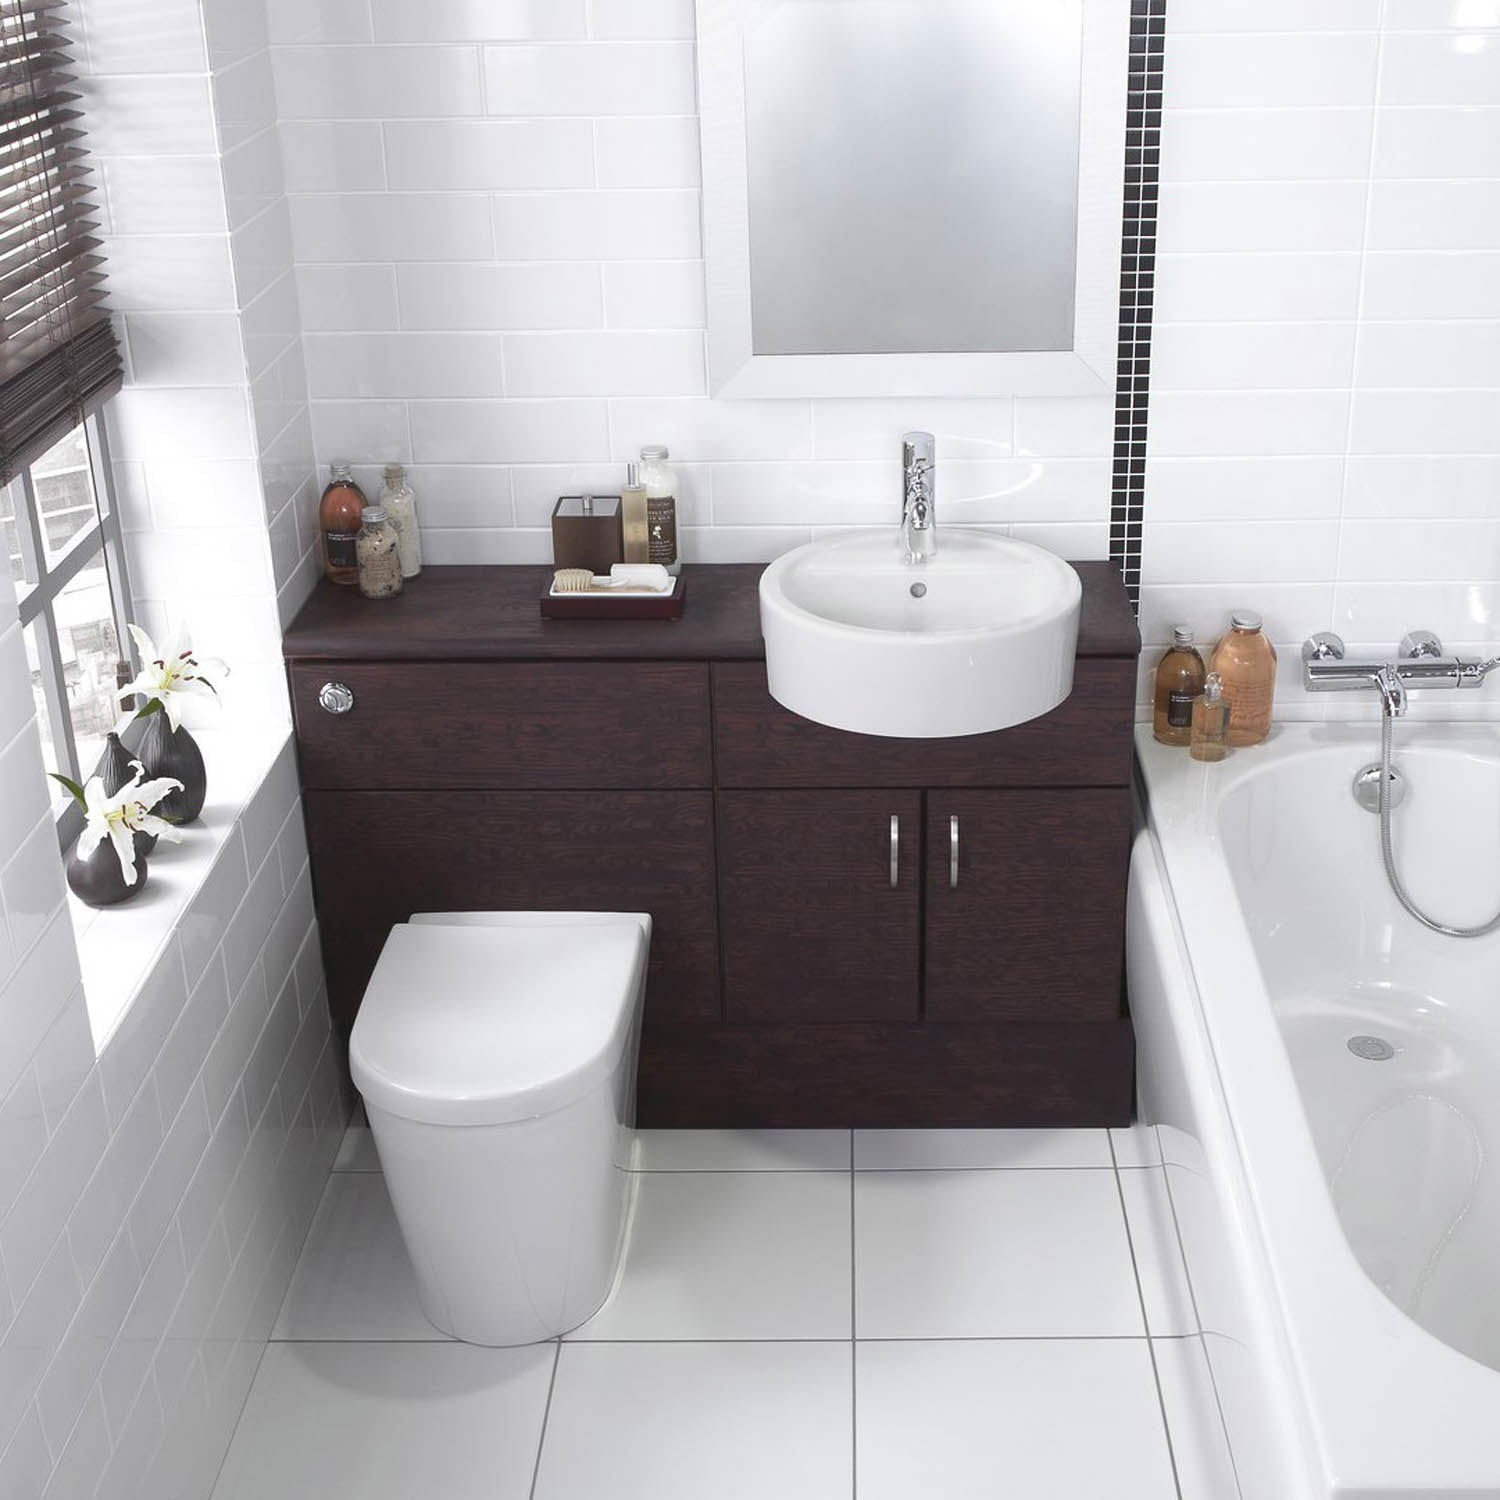 750mm Matrix Long Projection Back to Wall Toilet with a seat and no cover lifestyle image